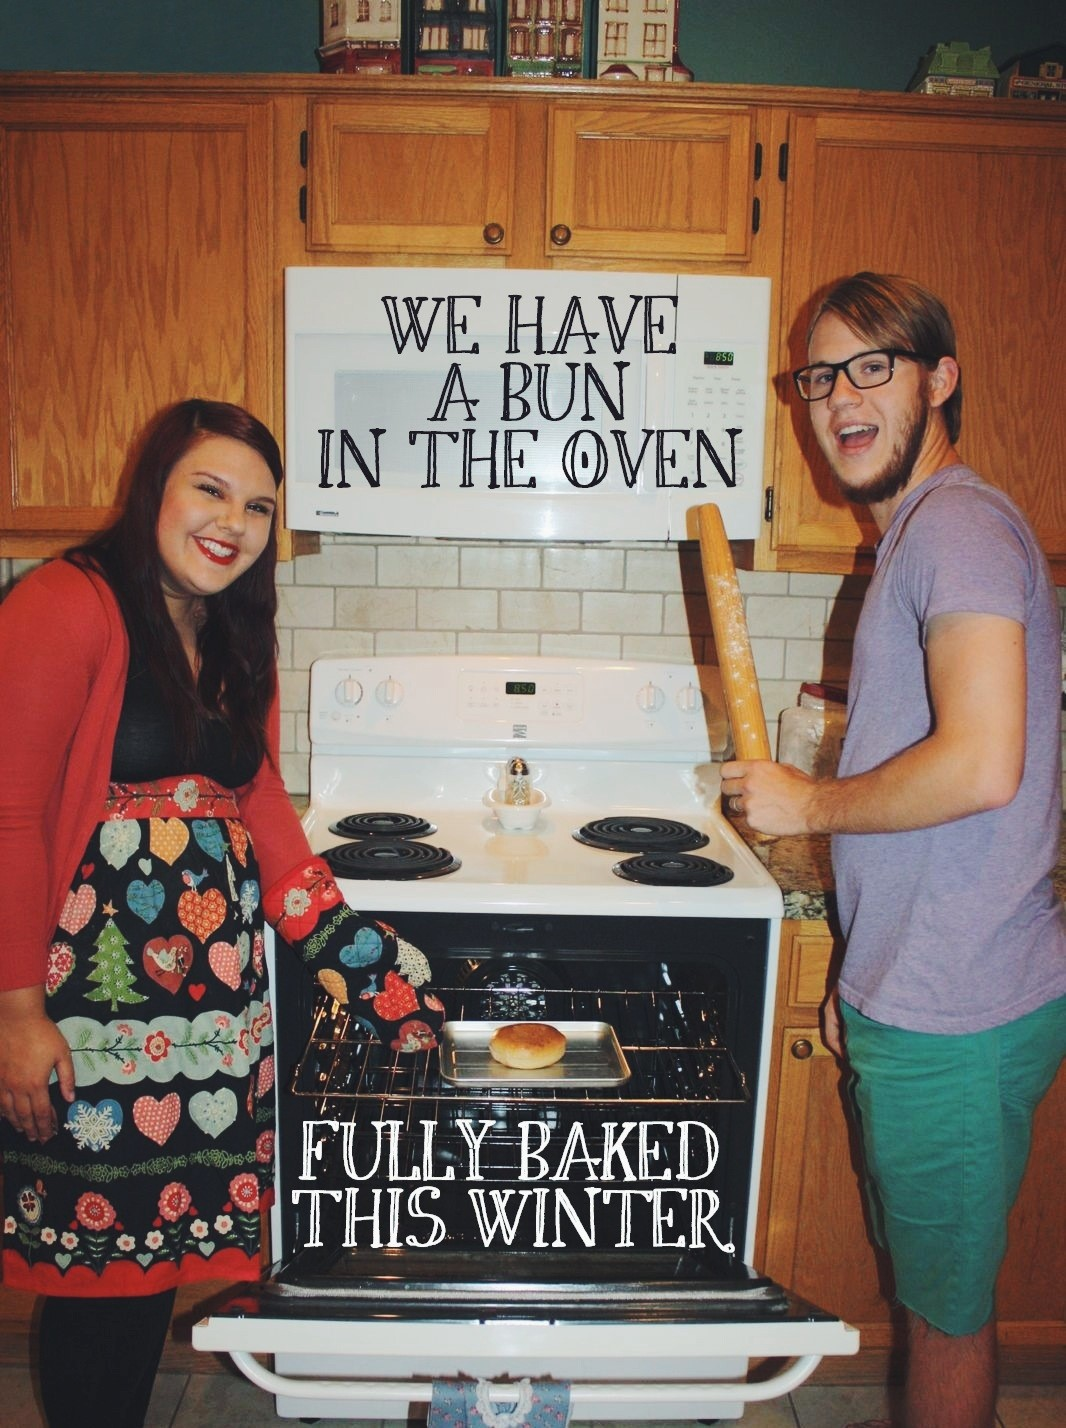 Freshly Baked Pregnancy announcement ideas for Facebook